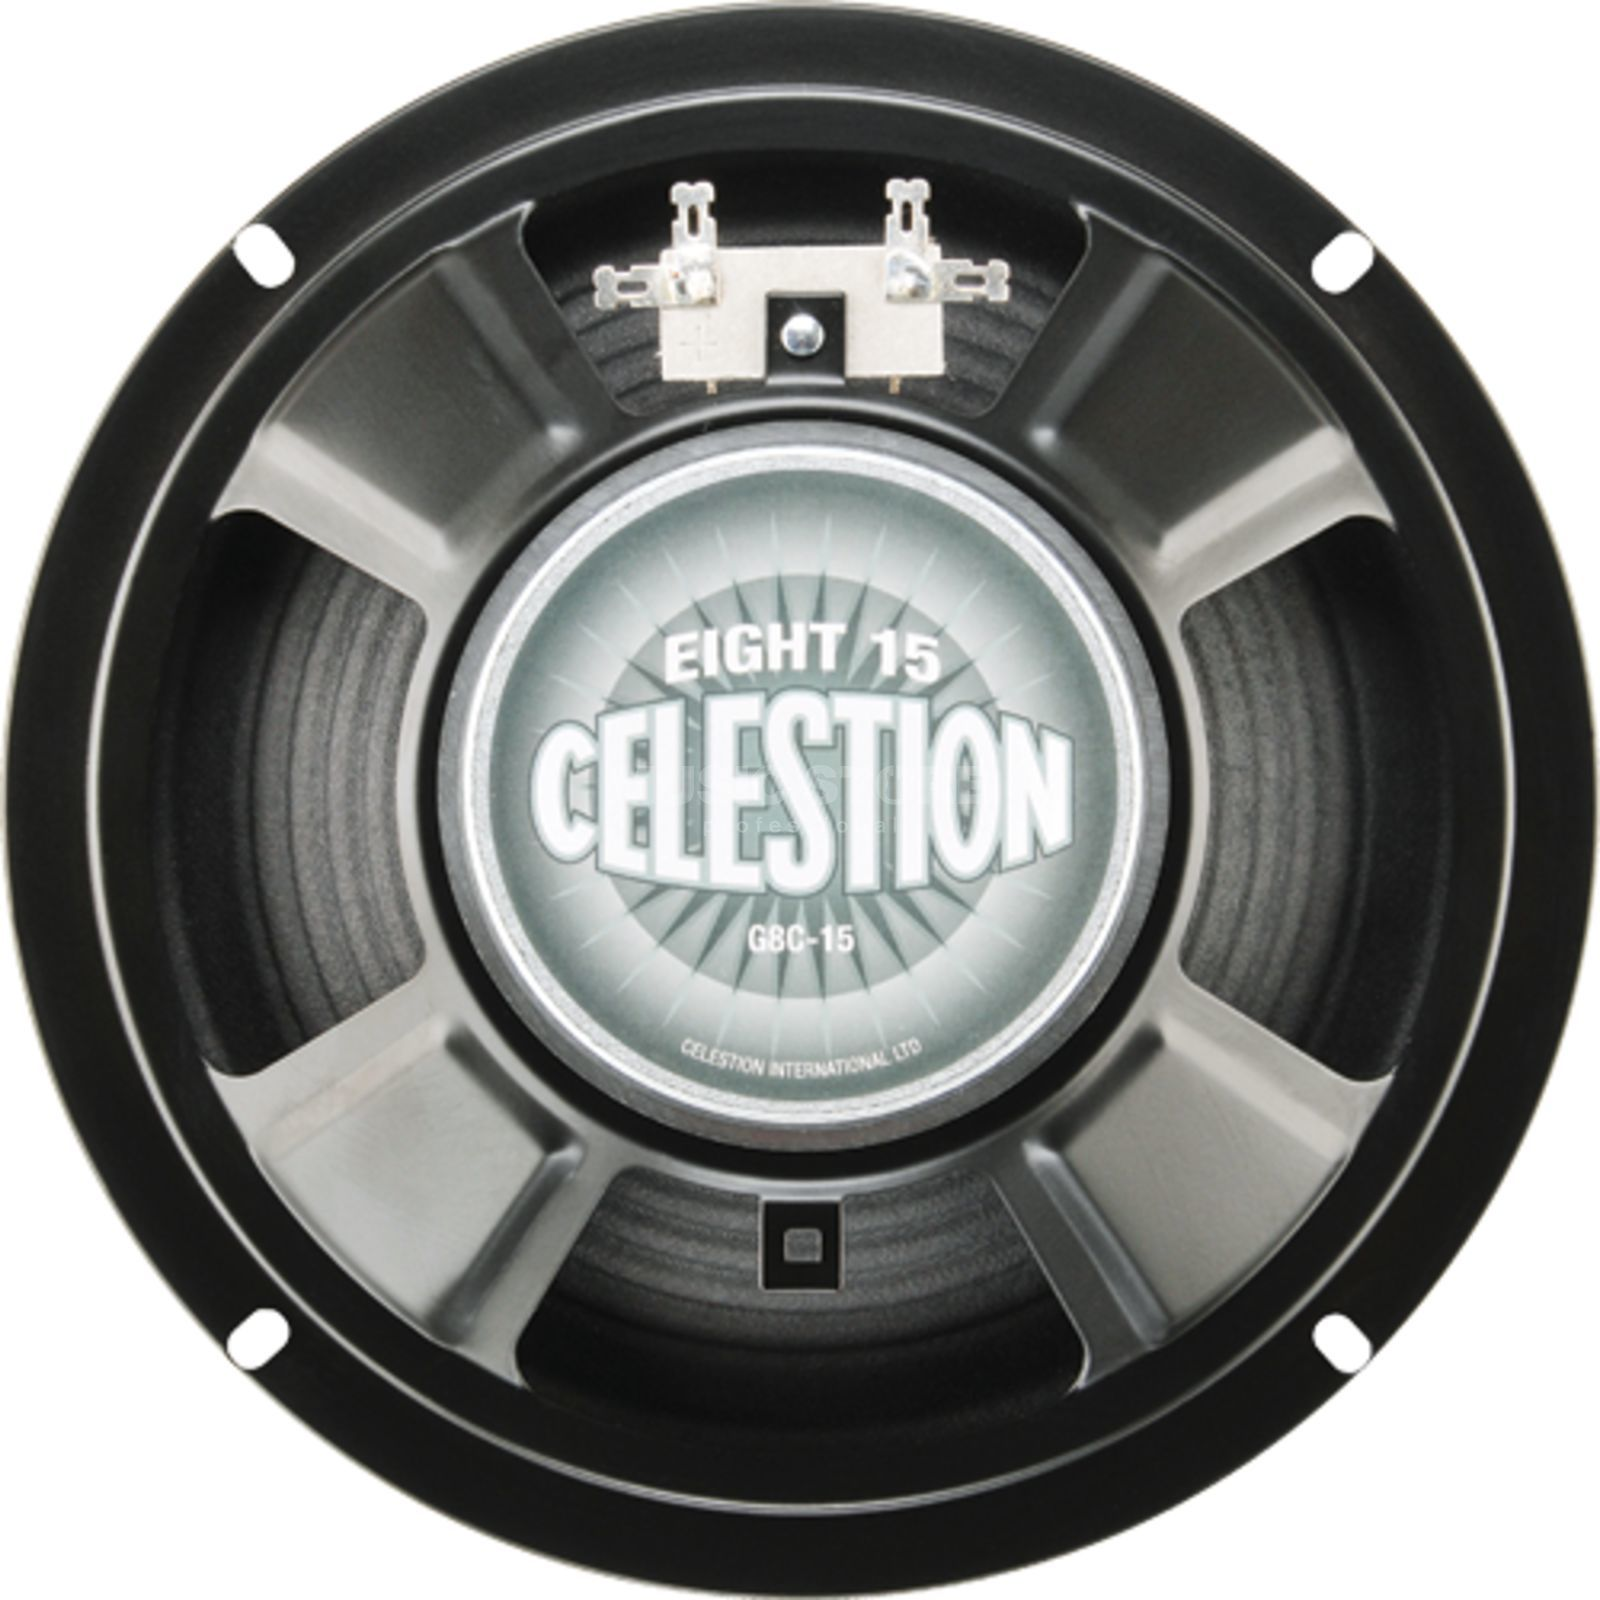 "Celestion Eight 15 8"" Speaker 16 Ohm Produktbild"